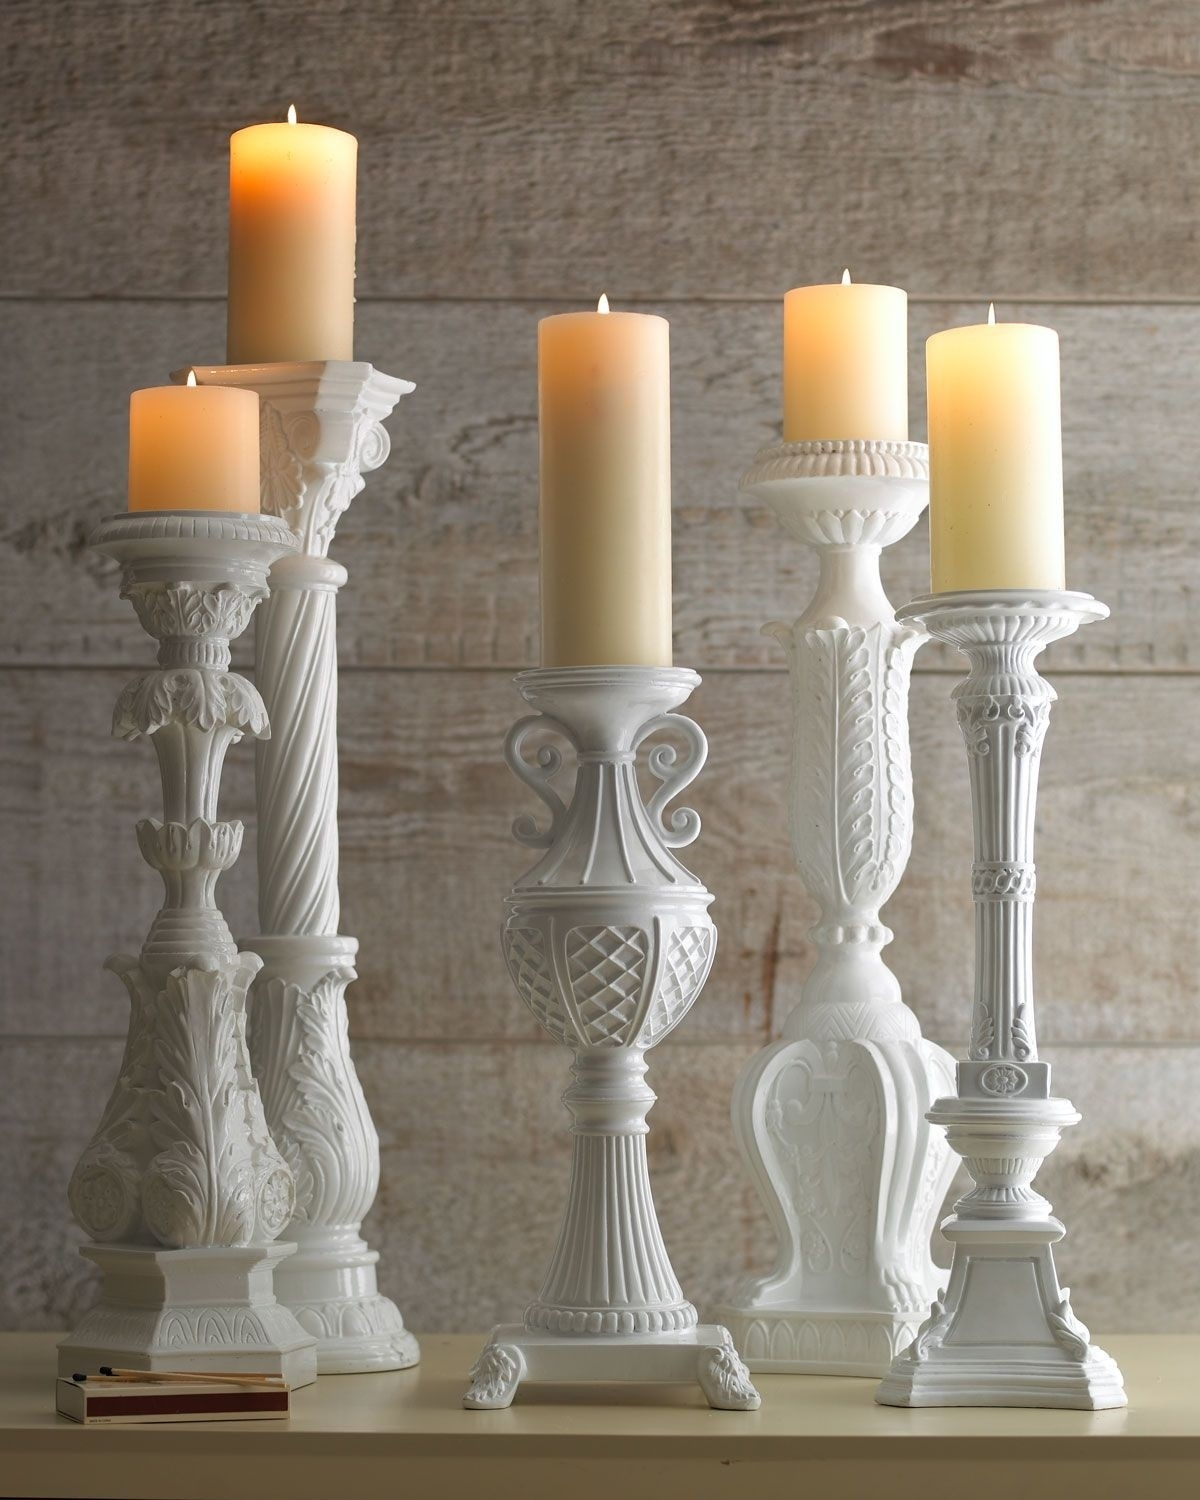 Decorative Hurricane Candle Holders Ideas On Foter